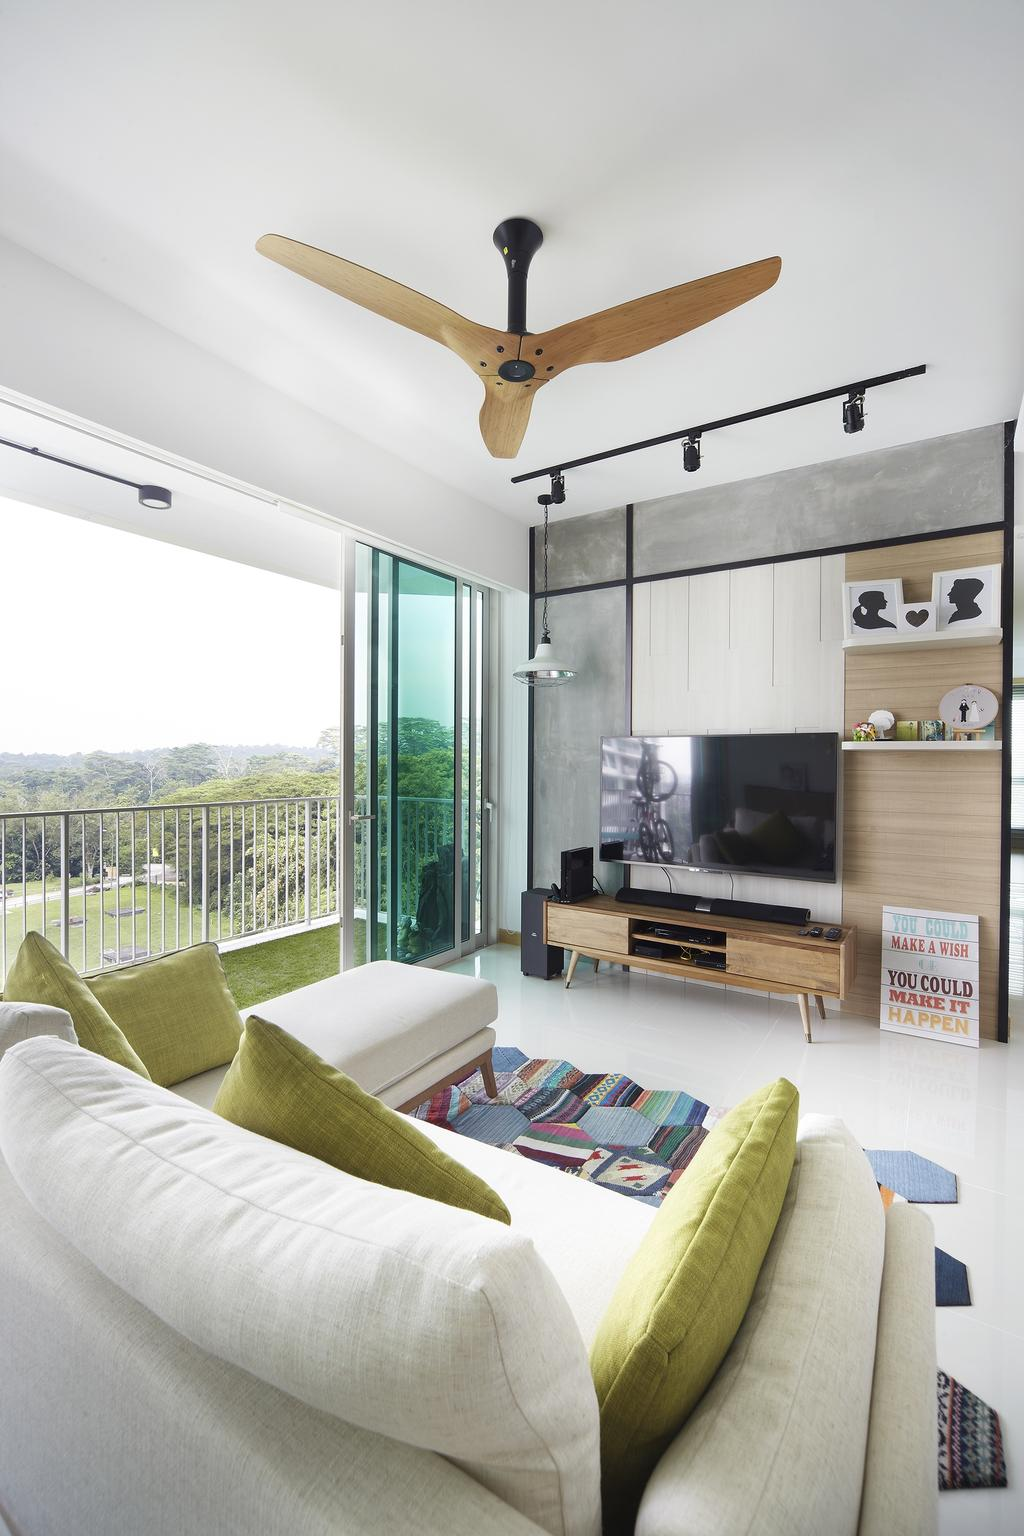 Scandinavian, Condo, Living Room, Tree House, Interior Designer, Free Space Intent, Full Length Windows, Wooden Fan, Black Track Lights, Trackie, Wooden Laminate, Rug, Console